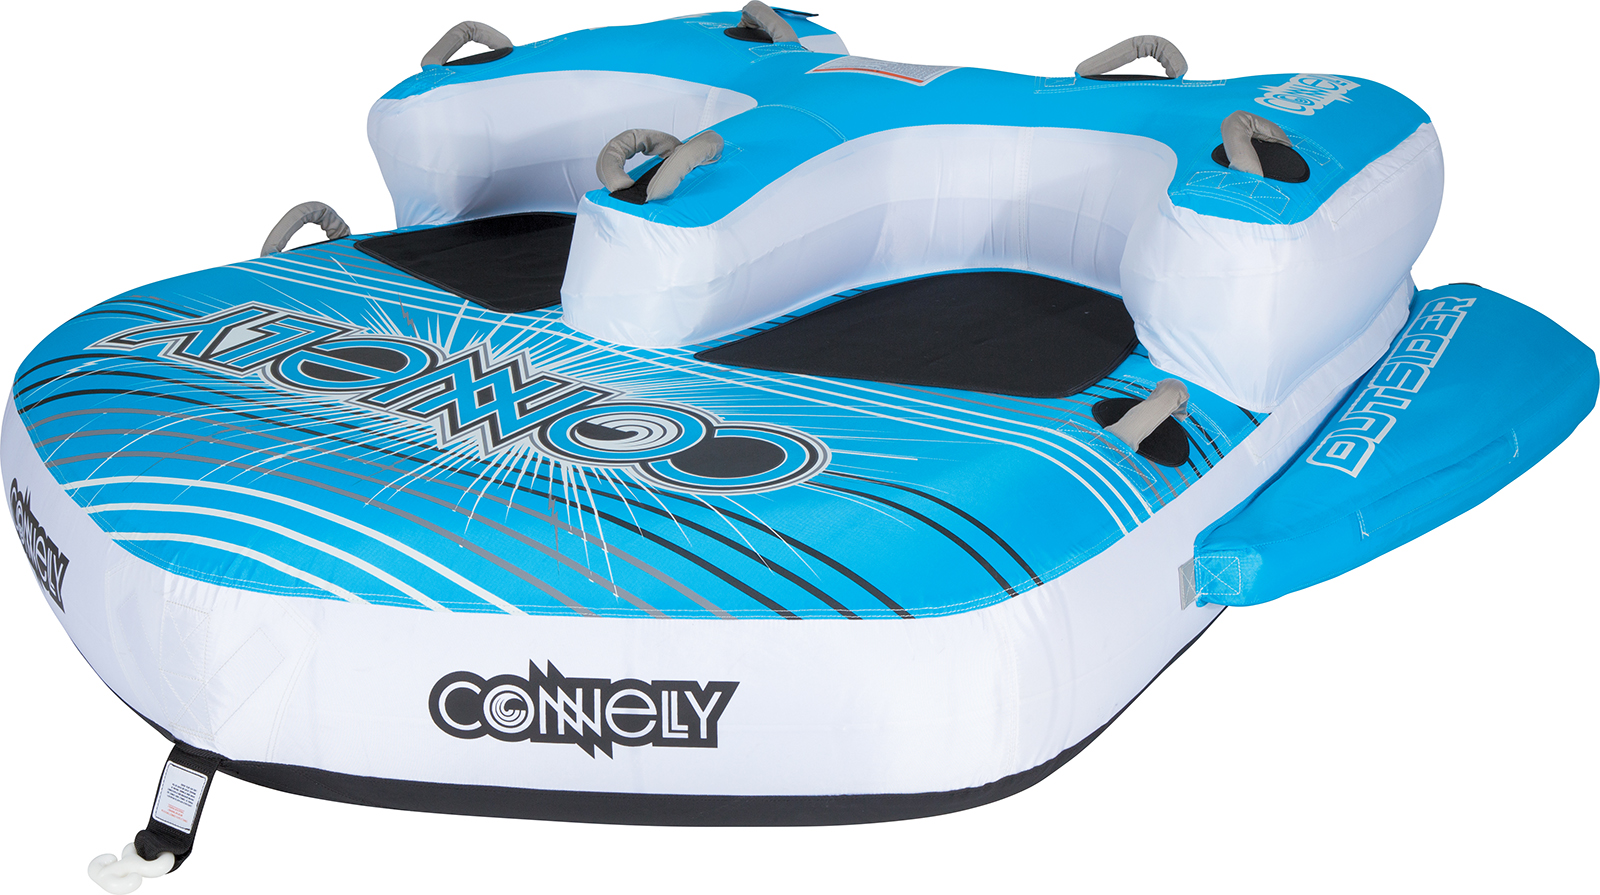 OUTSIDER 3 TOWABLE TUBE CONNELLY 2018